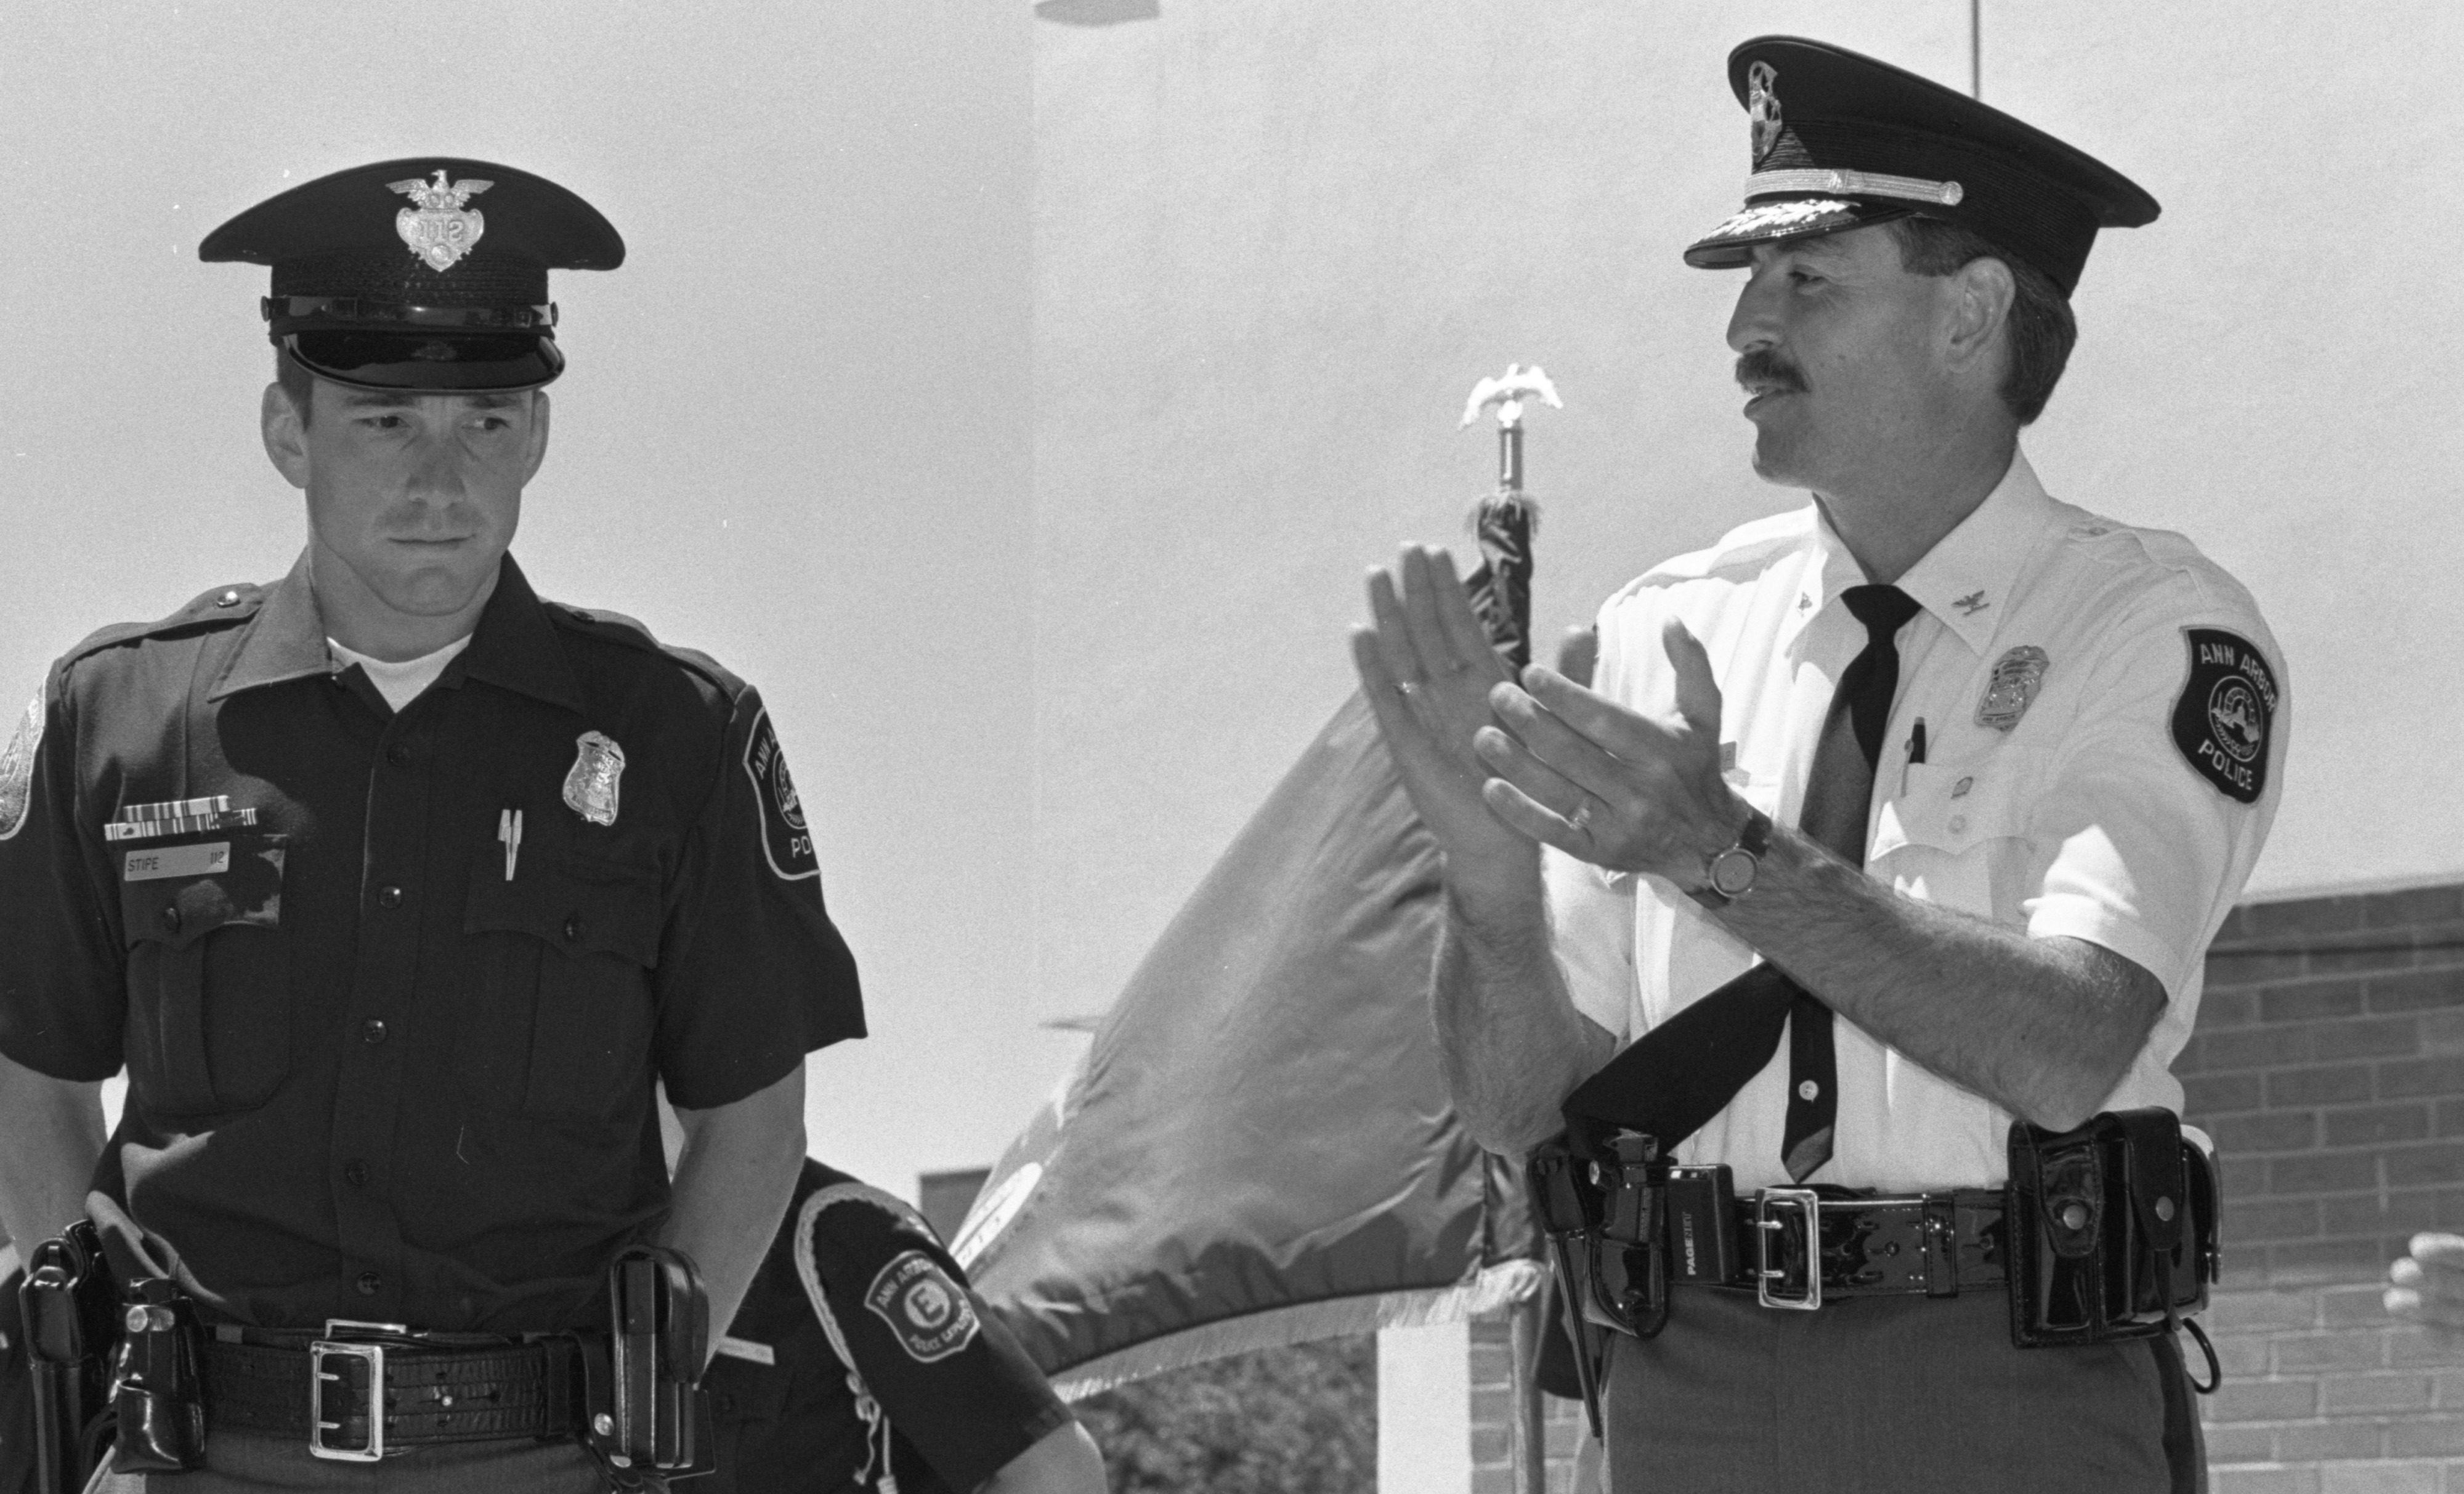 Officer Peter Stipe Honored At Ann Arbor Police Department Awards Ceremony, June 1991 image